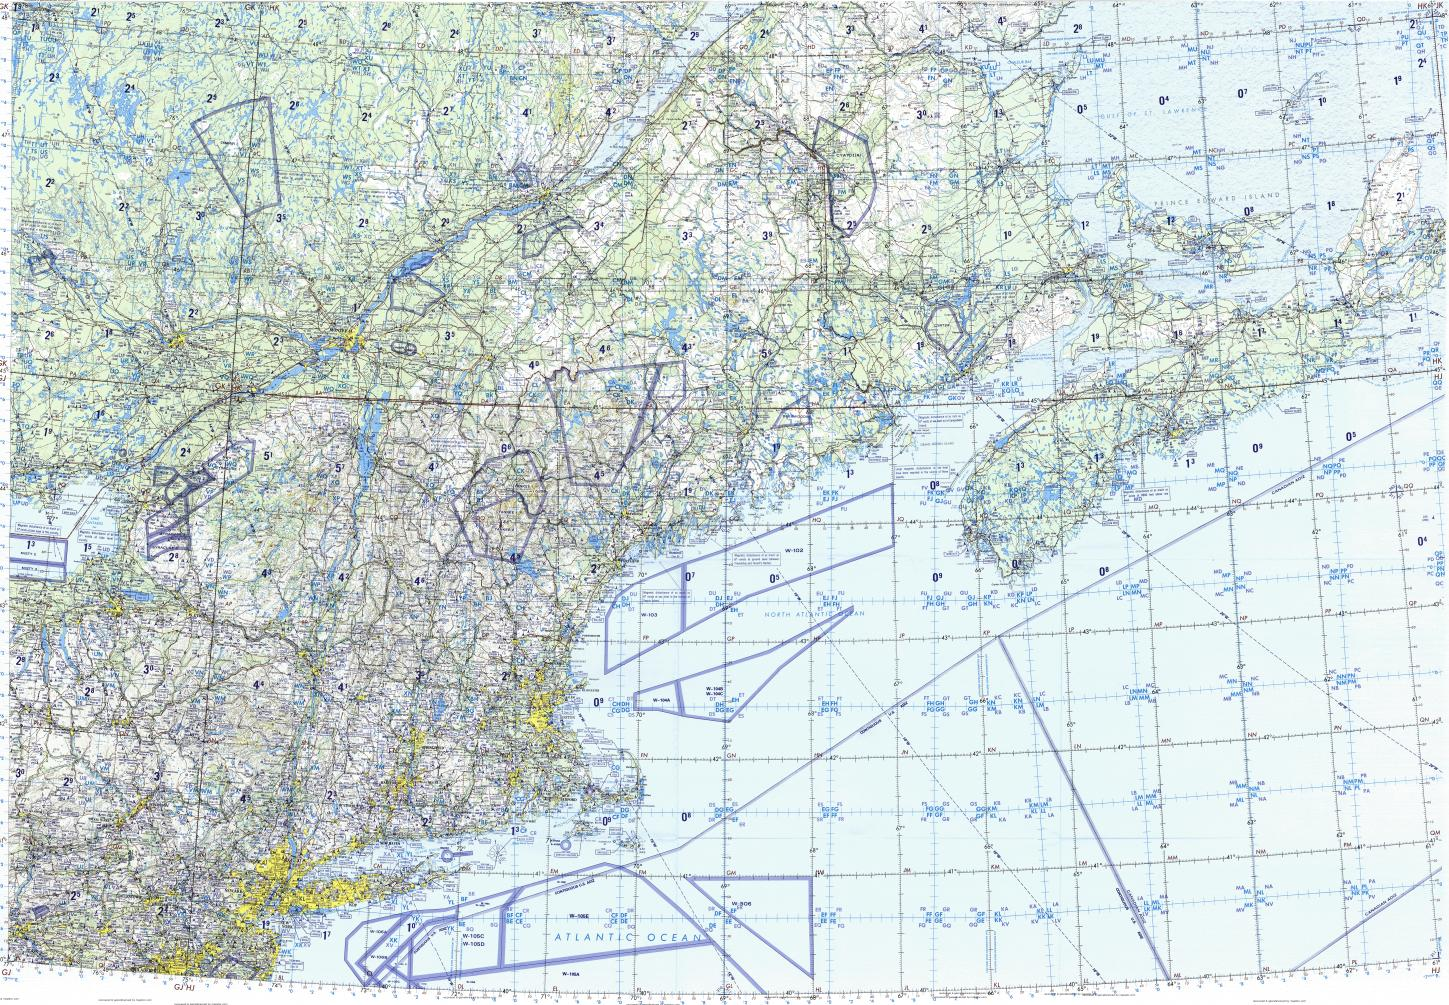 Download topographic map in area of New York Montreal Boston